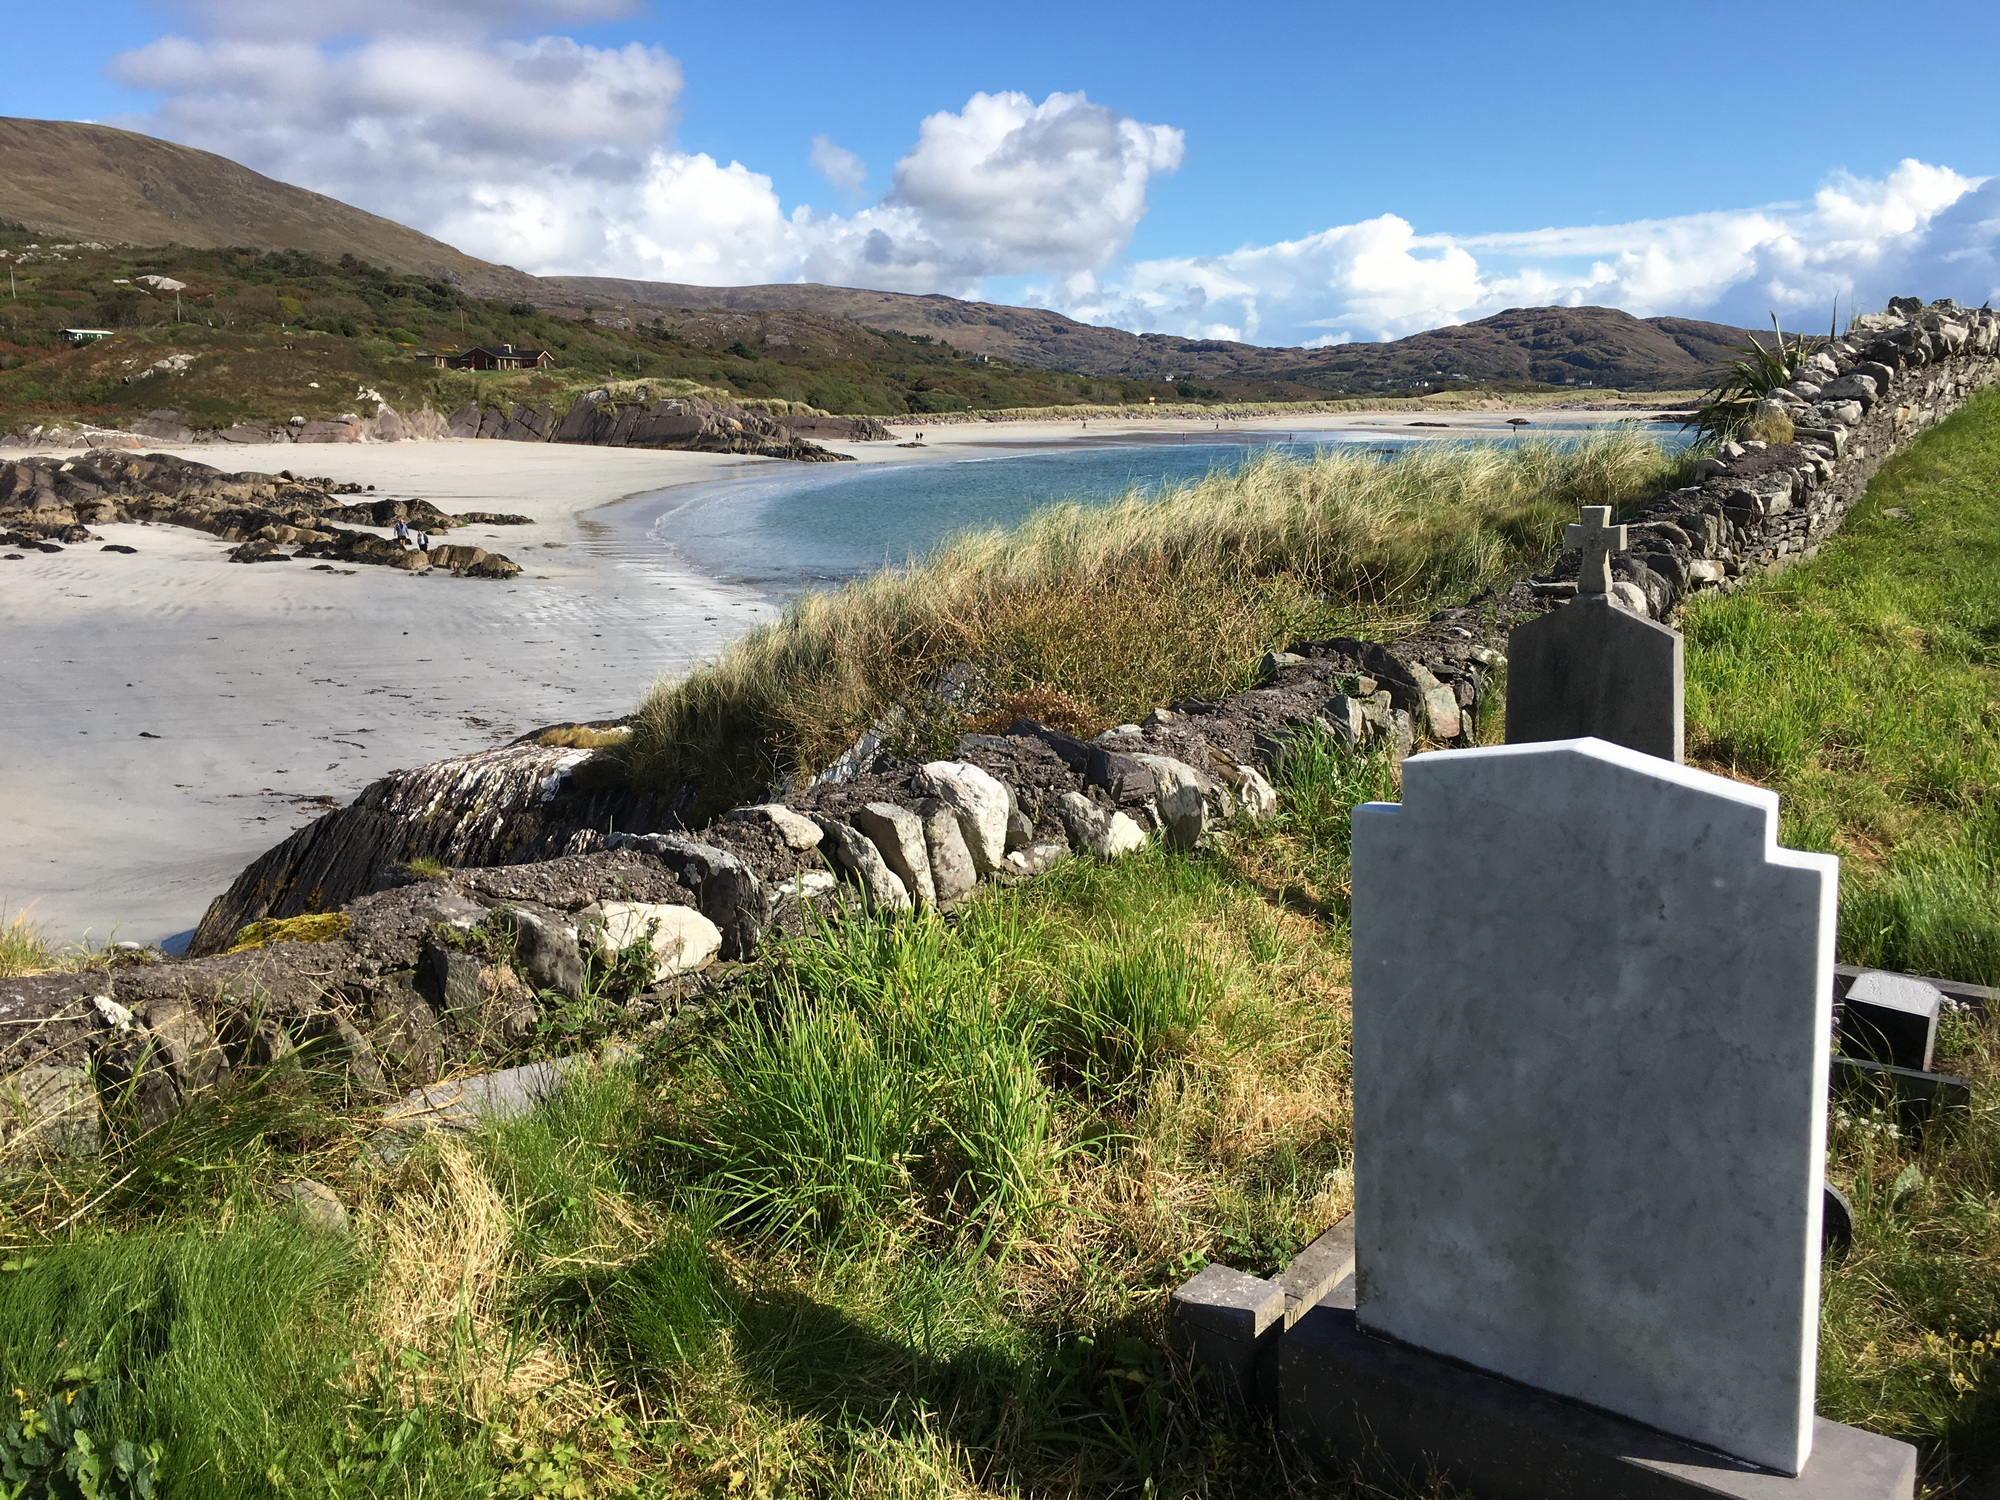 Derrynane Abbey Cemetery, Part of the Ring of Kerry, Ireland